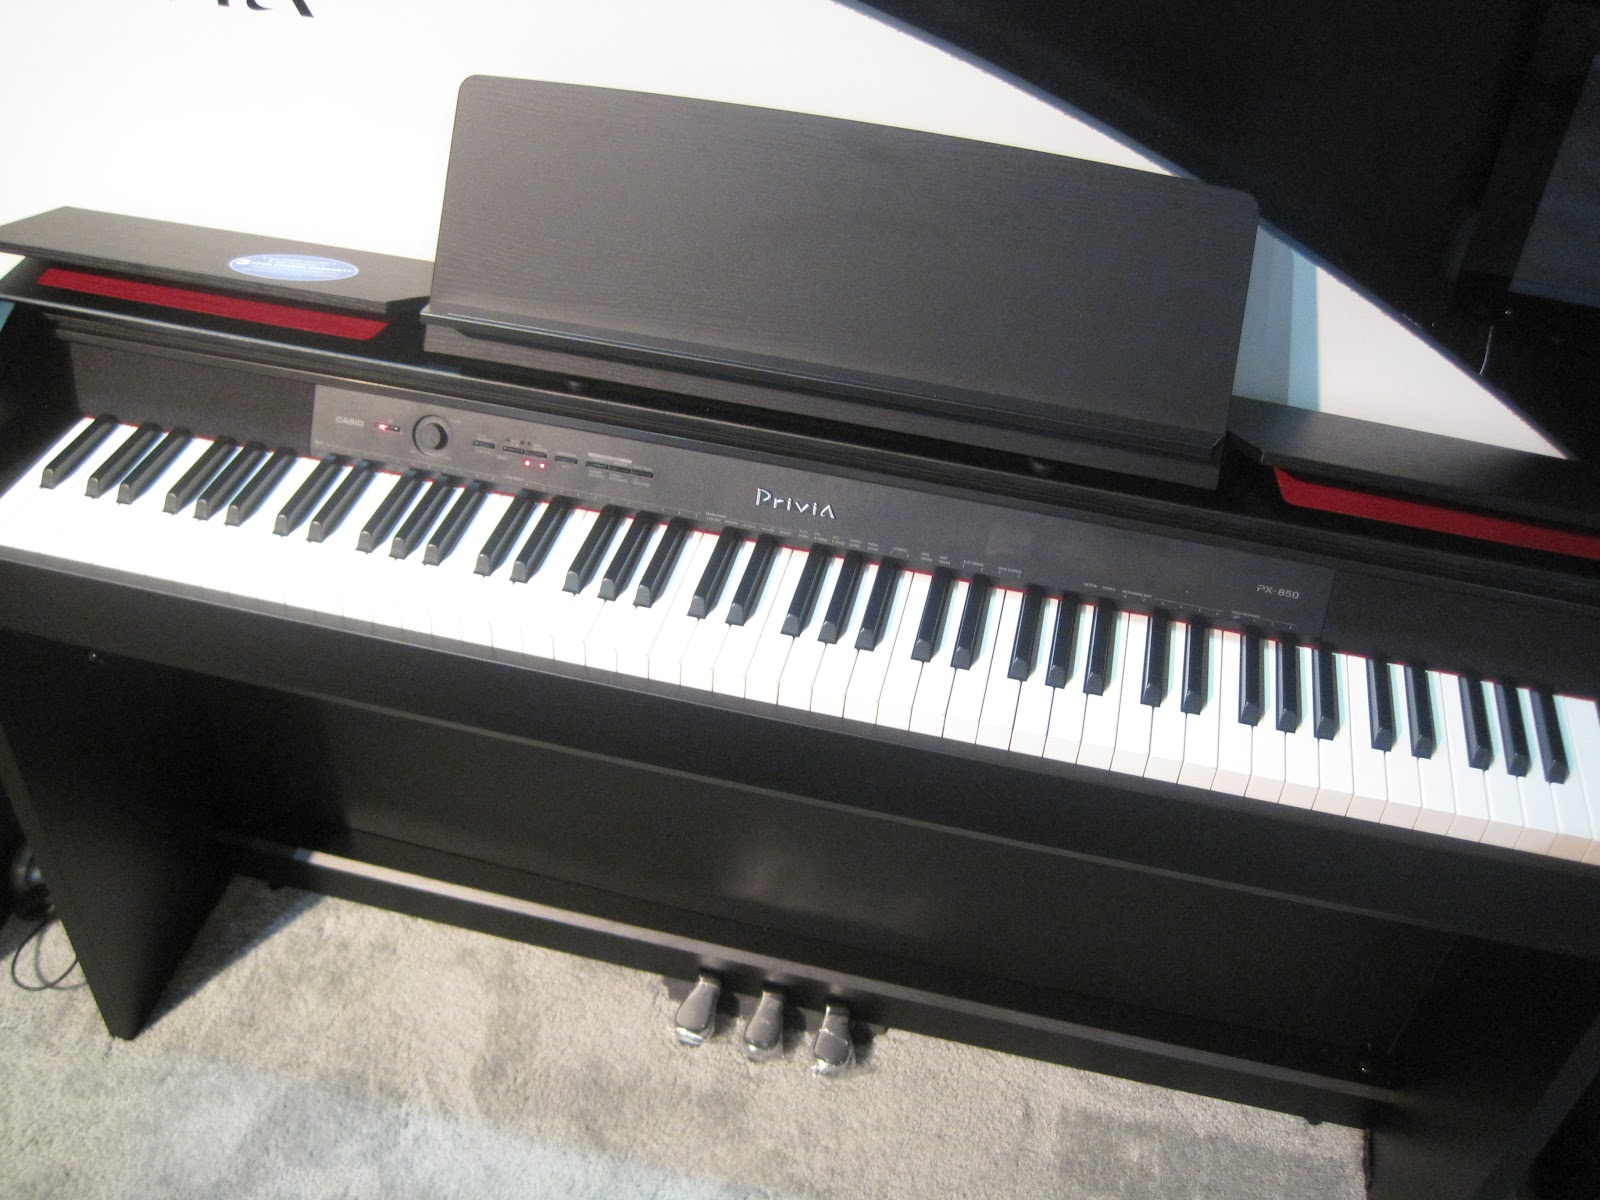 az piano reviews review casio px830 digital piano very nice for the price. Black Bedroom Furniture Sets. Home Design Ideas